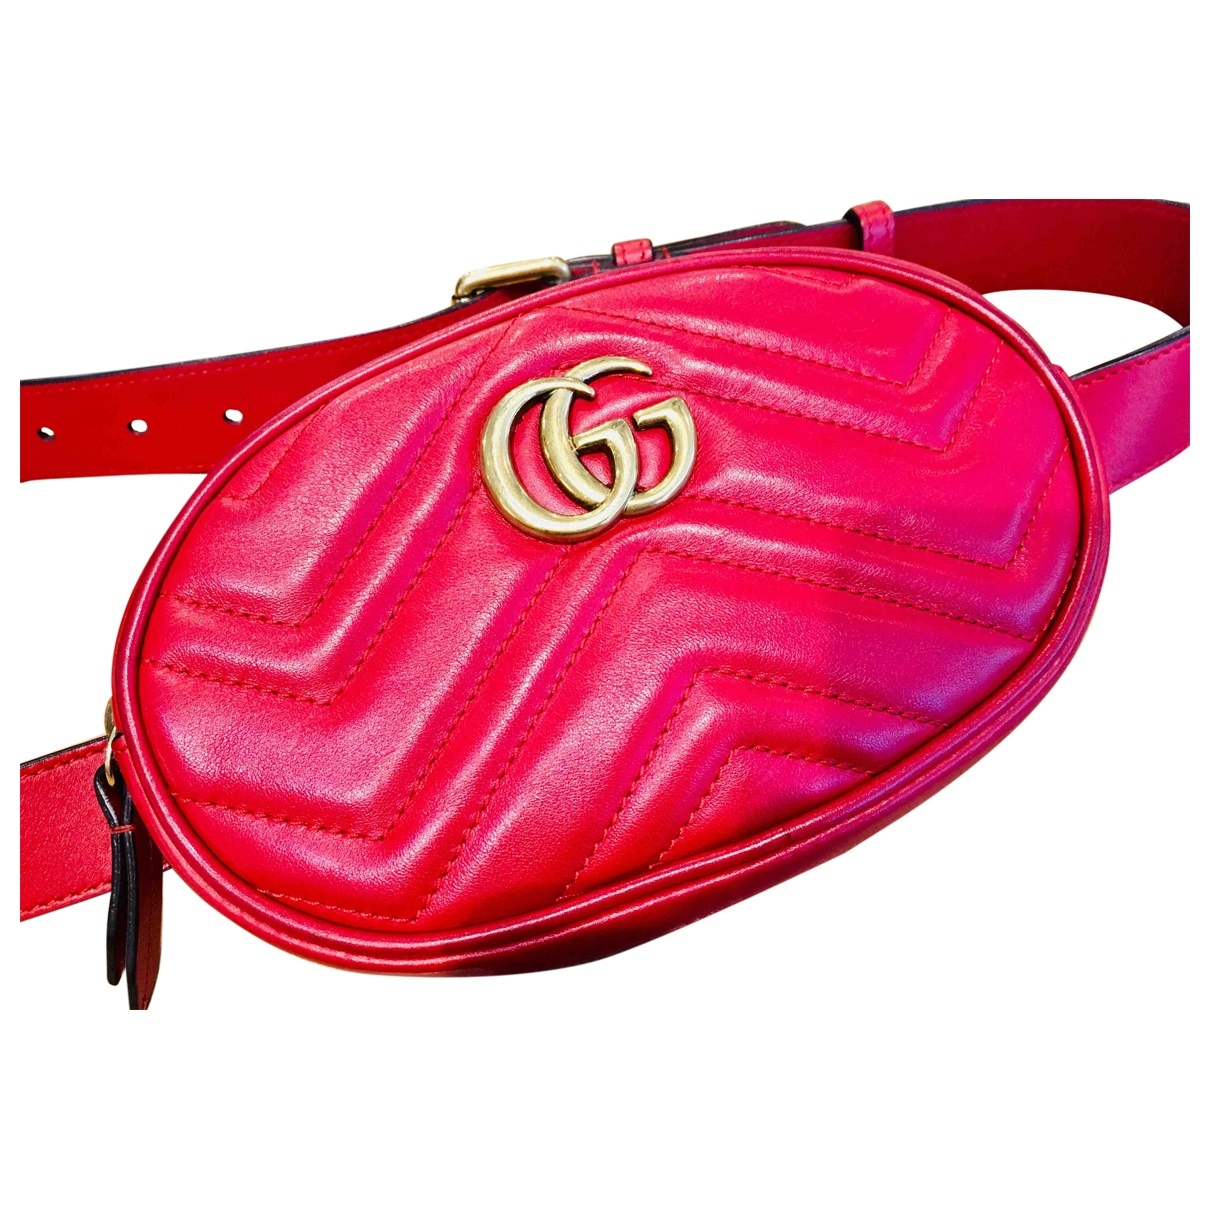 Gucci Marmont Red Leather Clutch bag for Women 95 cm